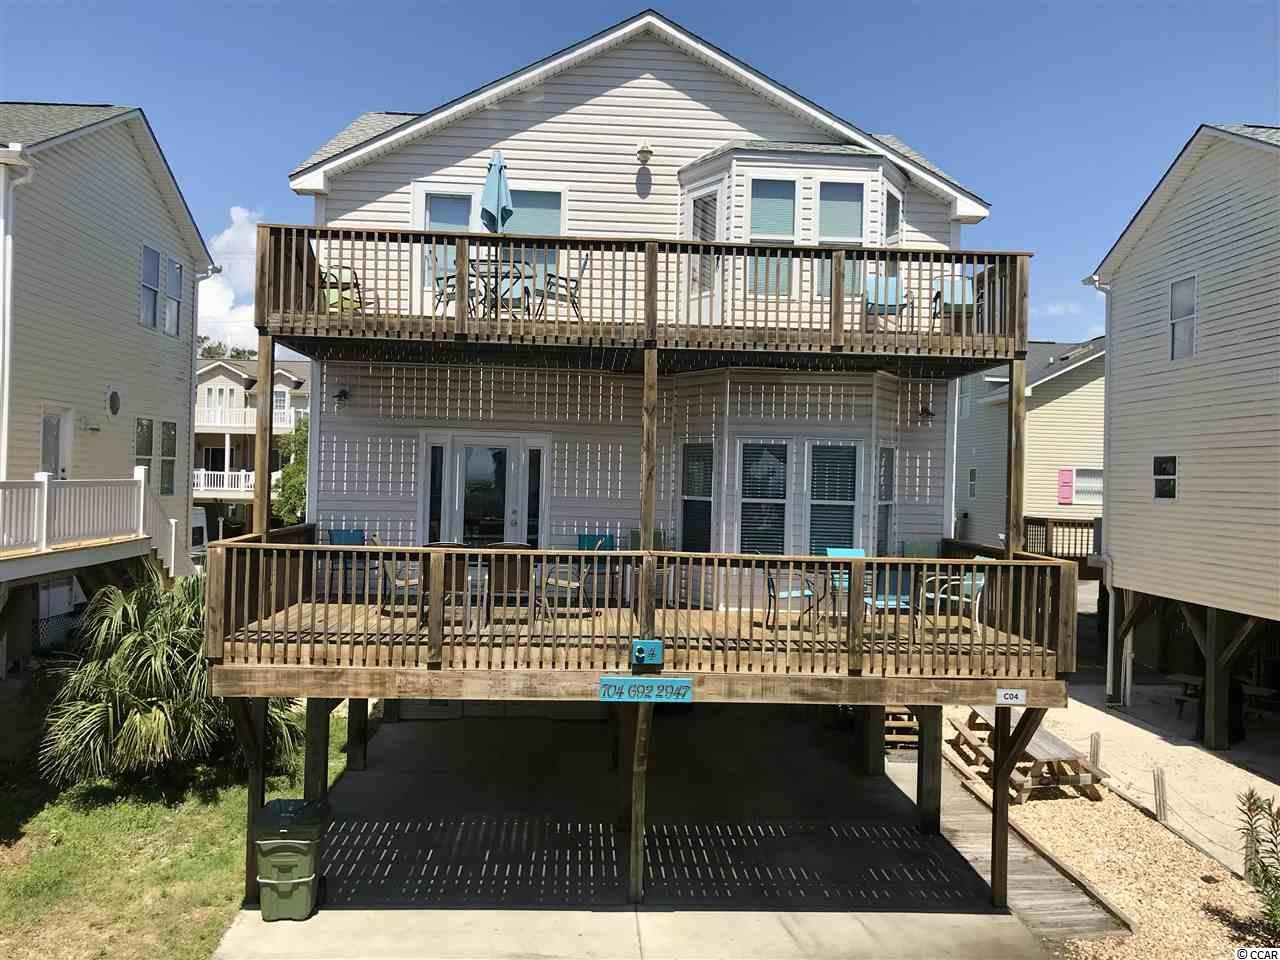 6001 - C4 S Kings Hwy., Myrtle Beach, South Carolina